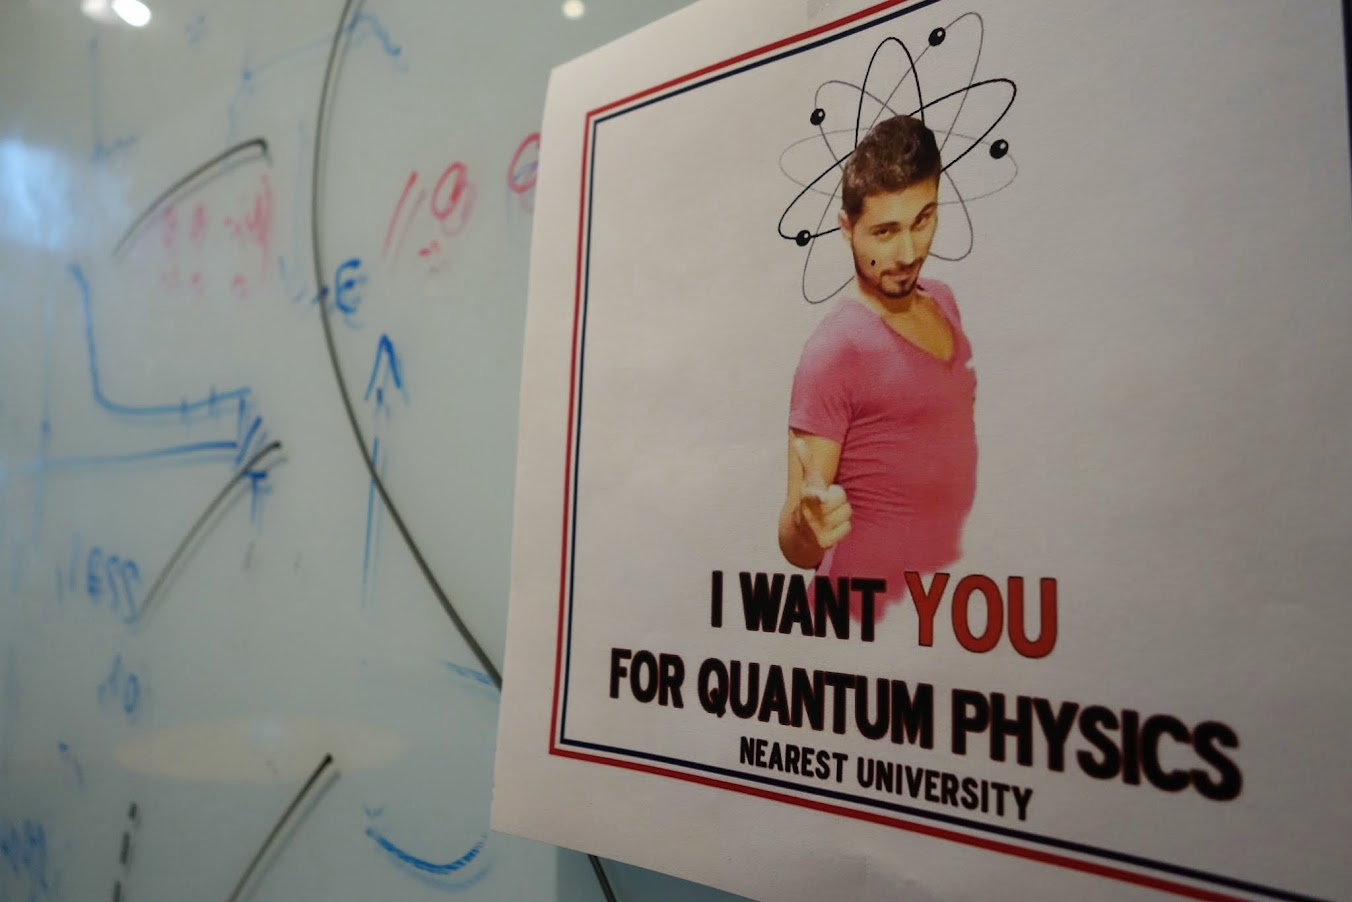 I want YOU for quantum physics